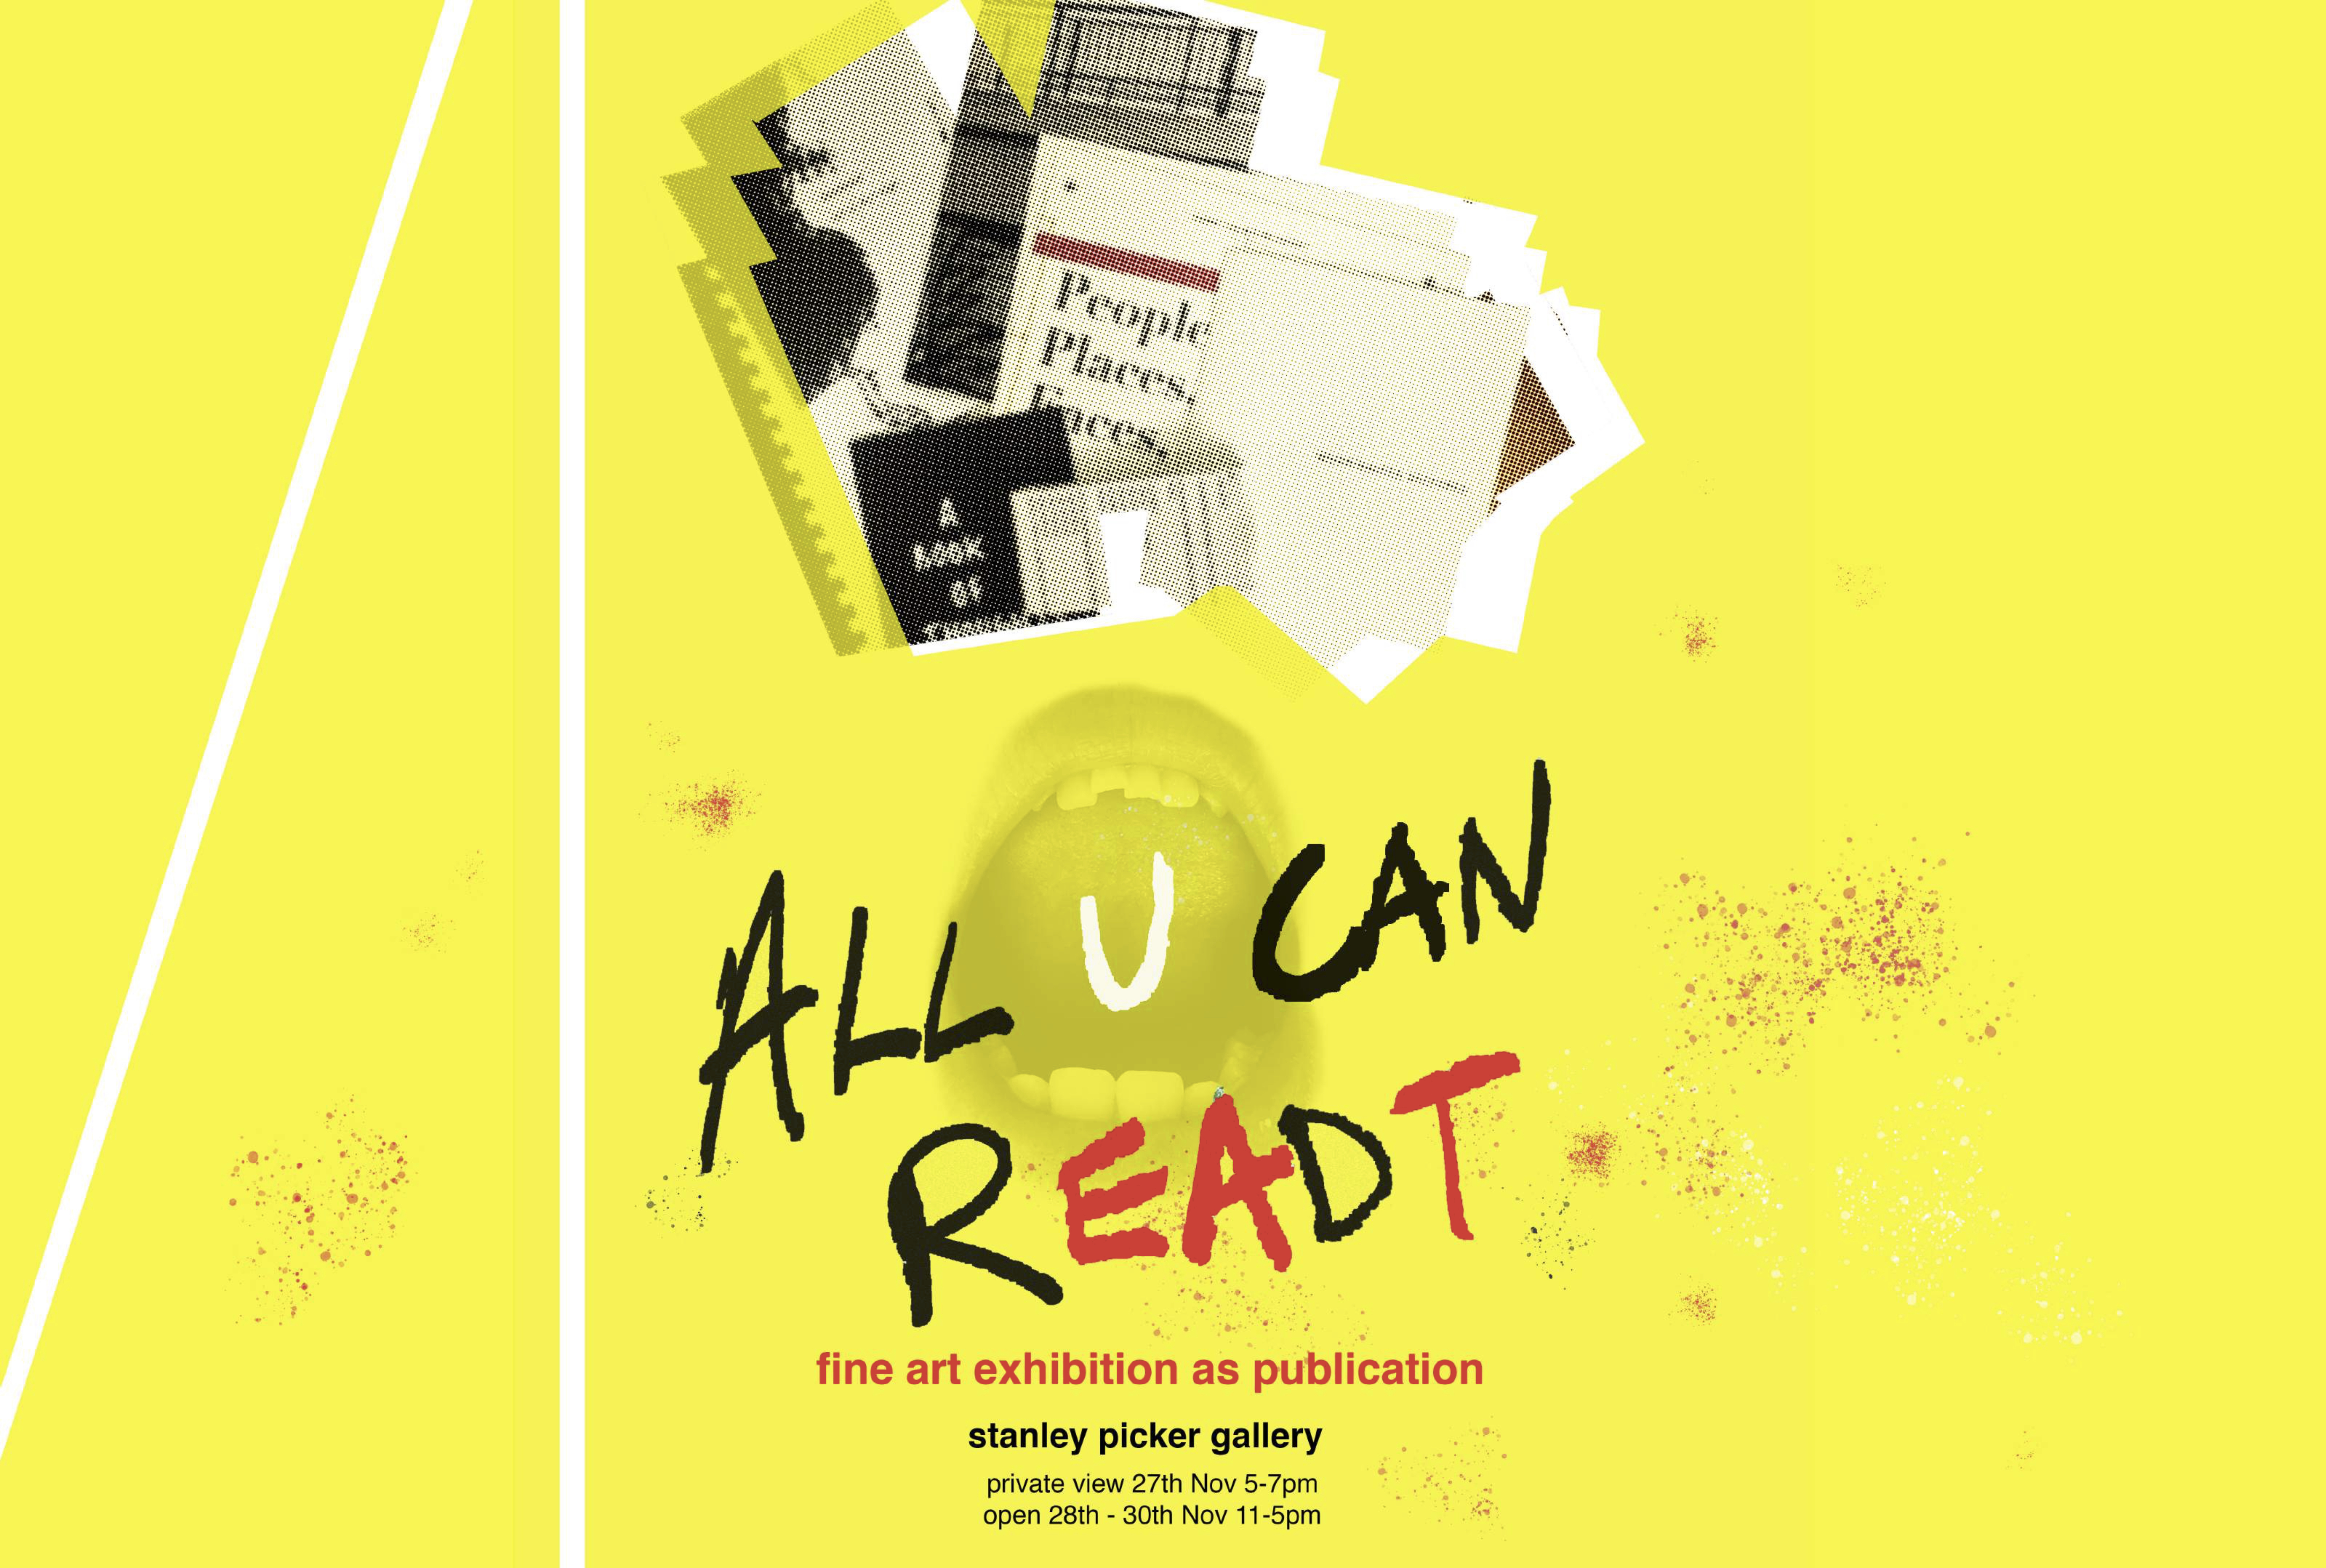 Lobby Project: Exhibition as Publication - All you can rEAdT